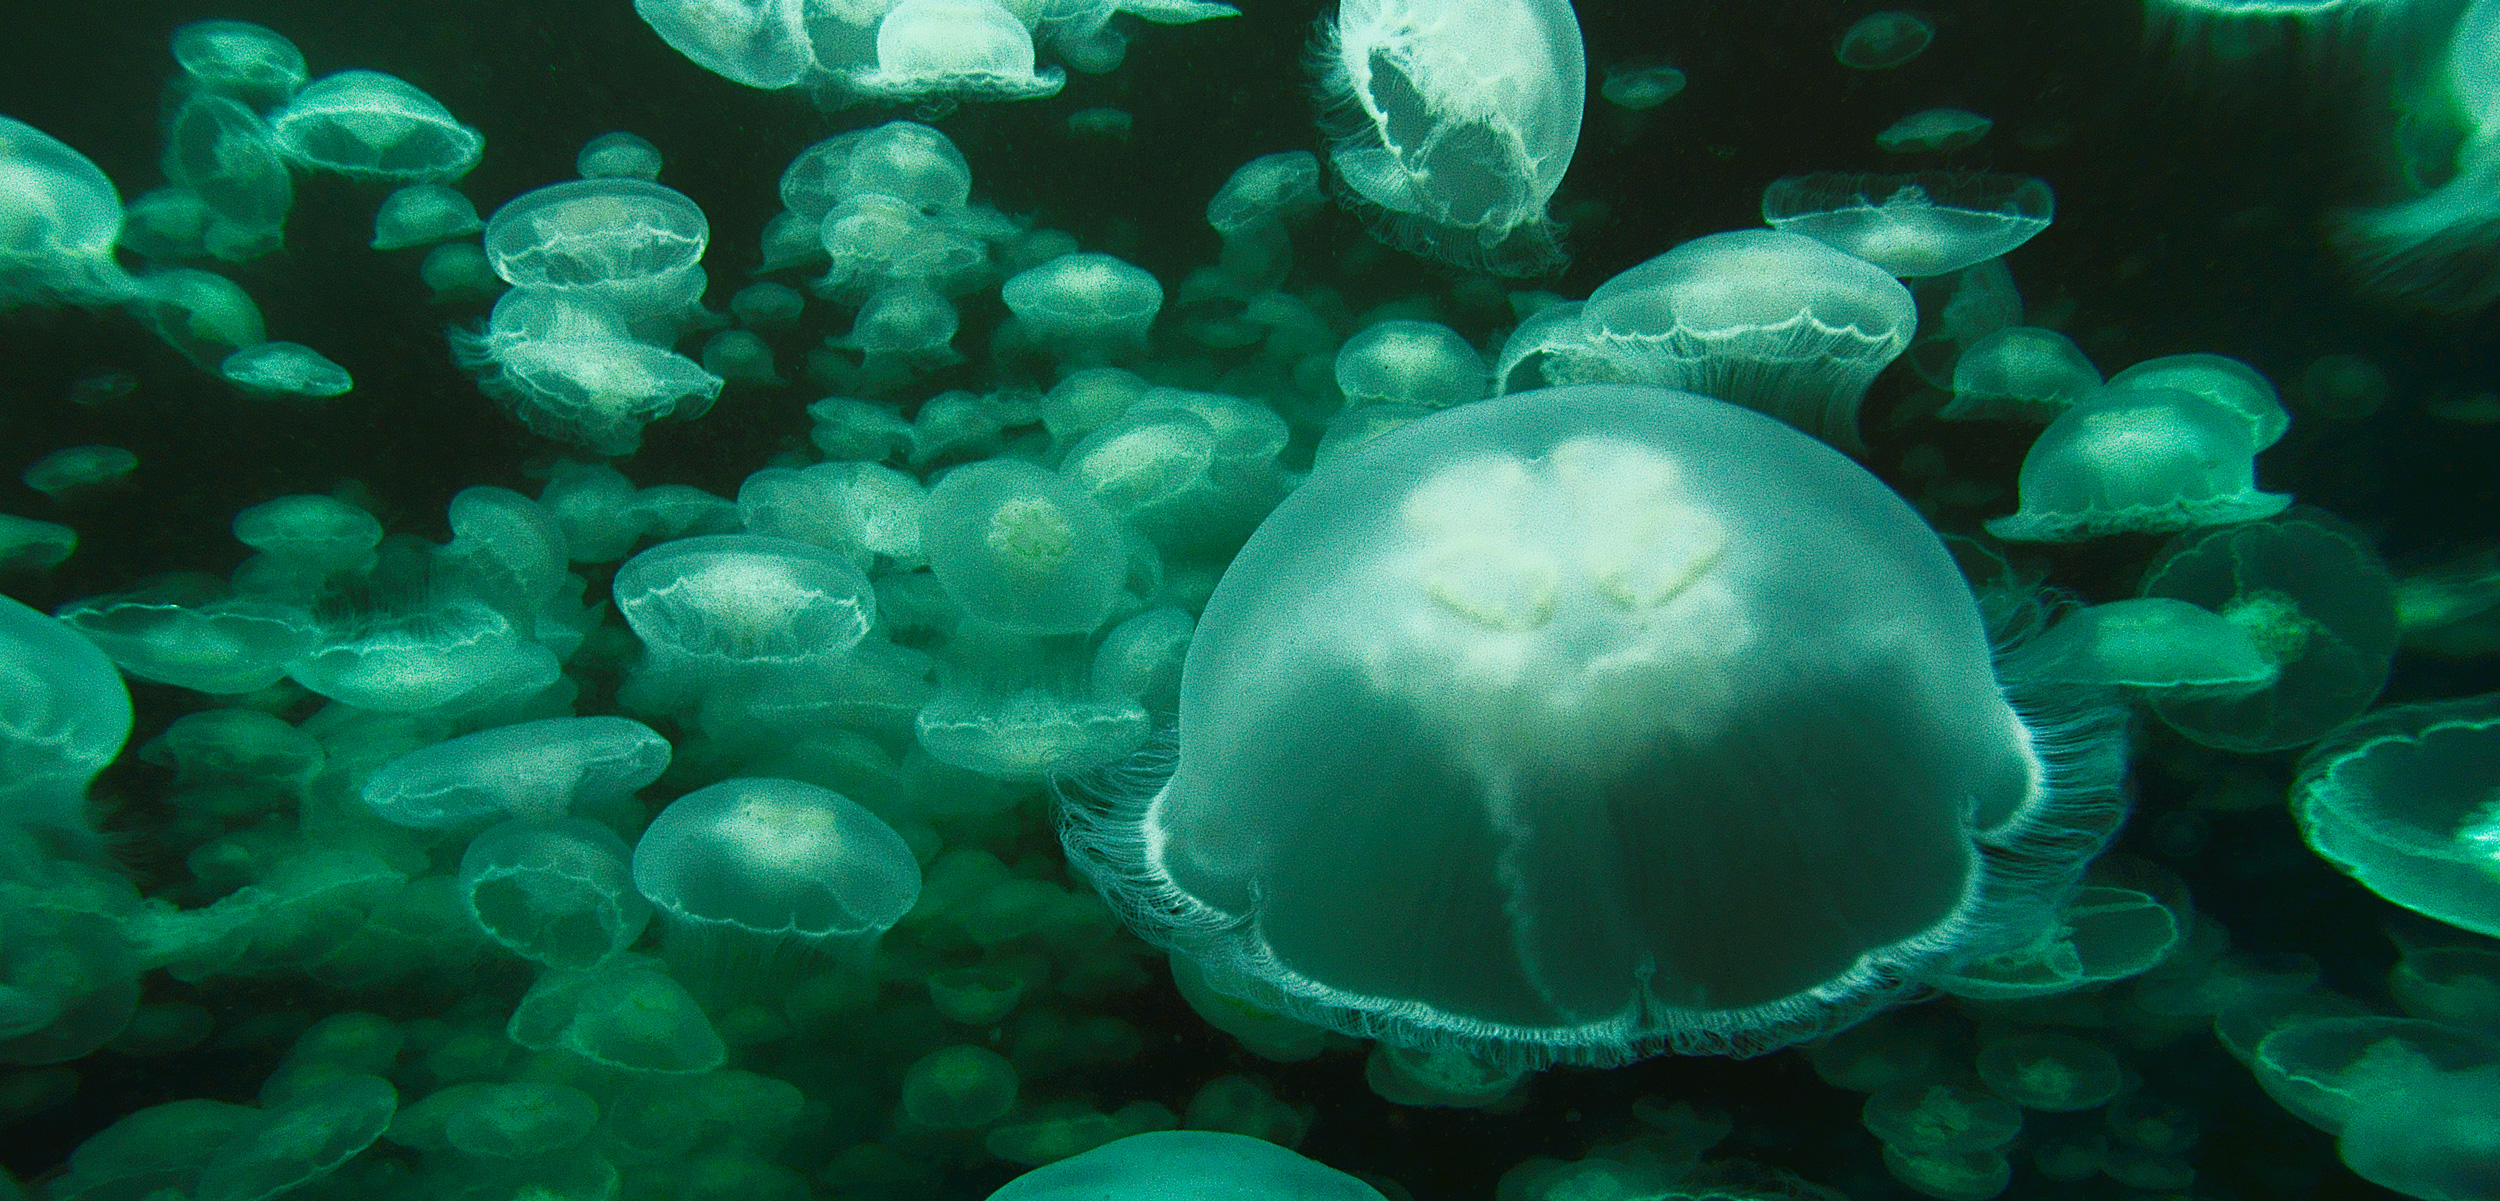 swarm of moon jellies